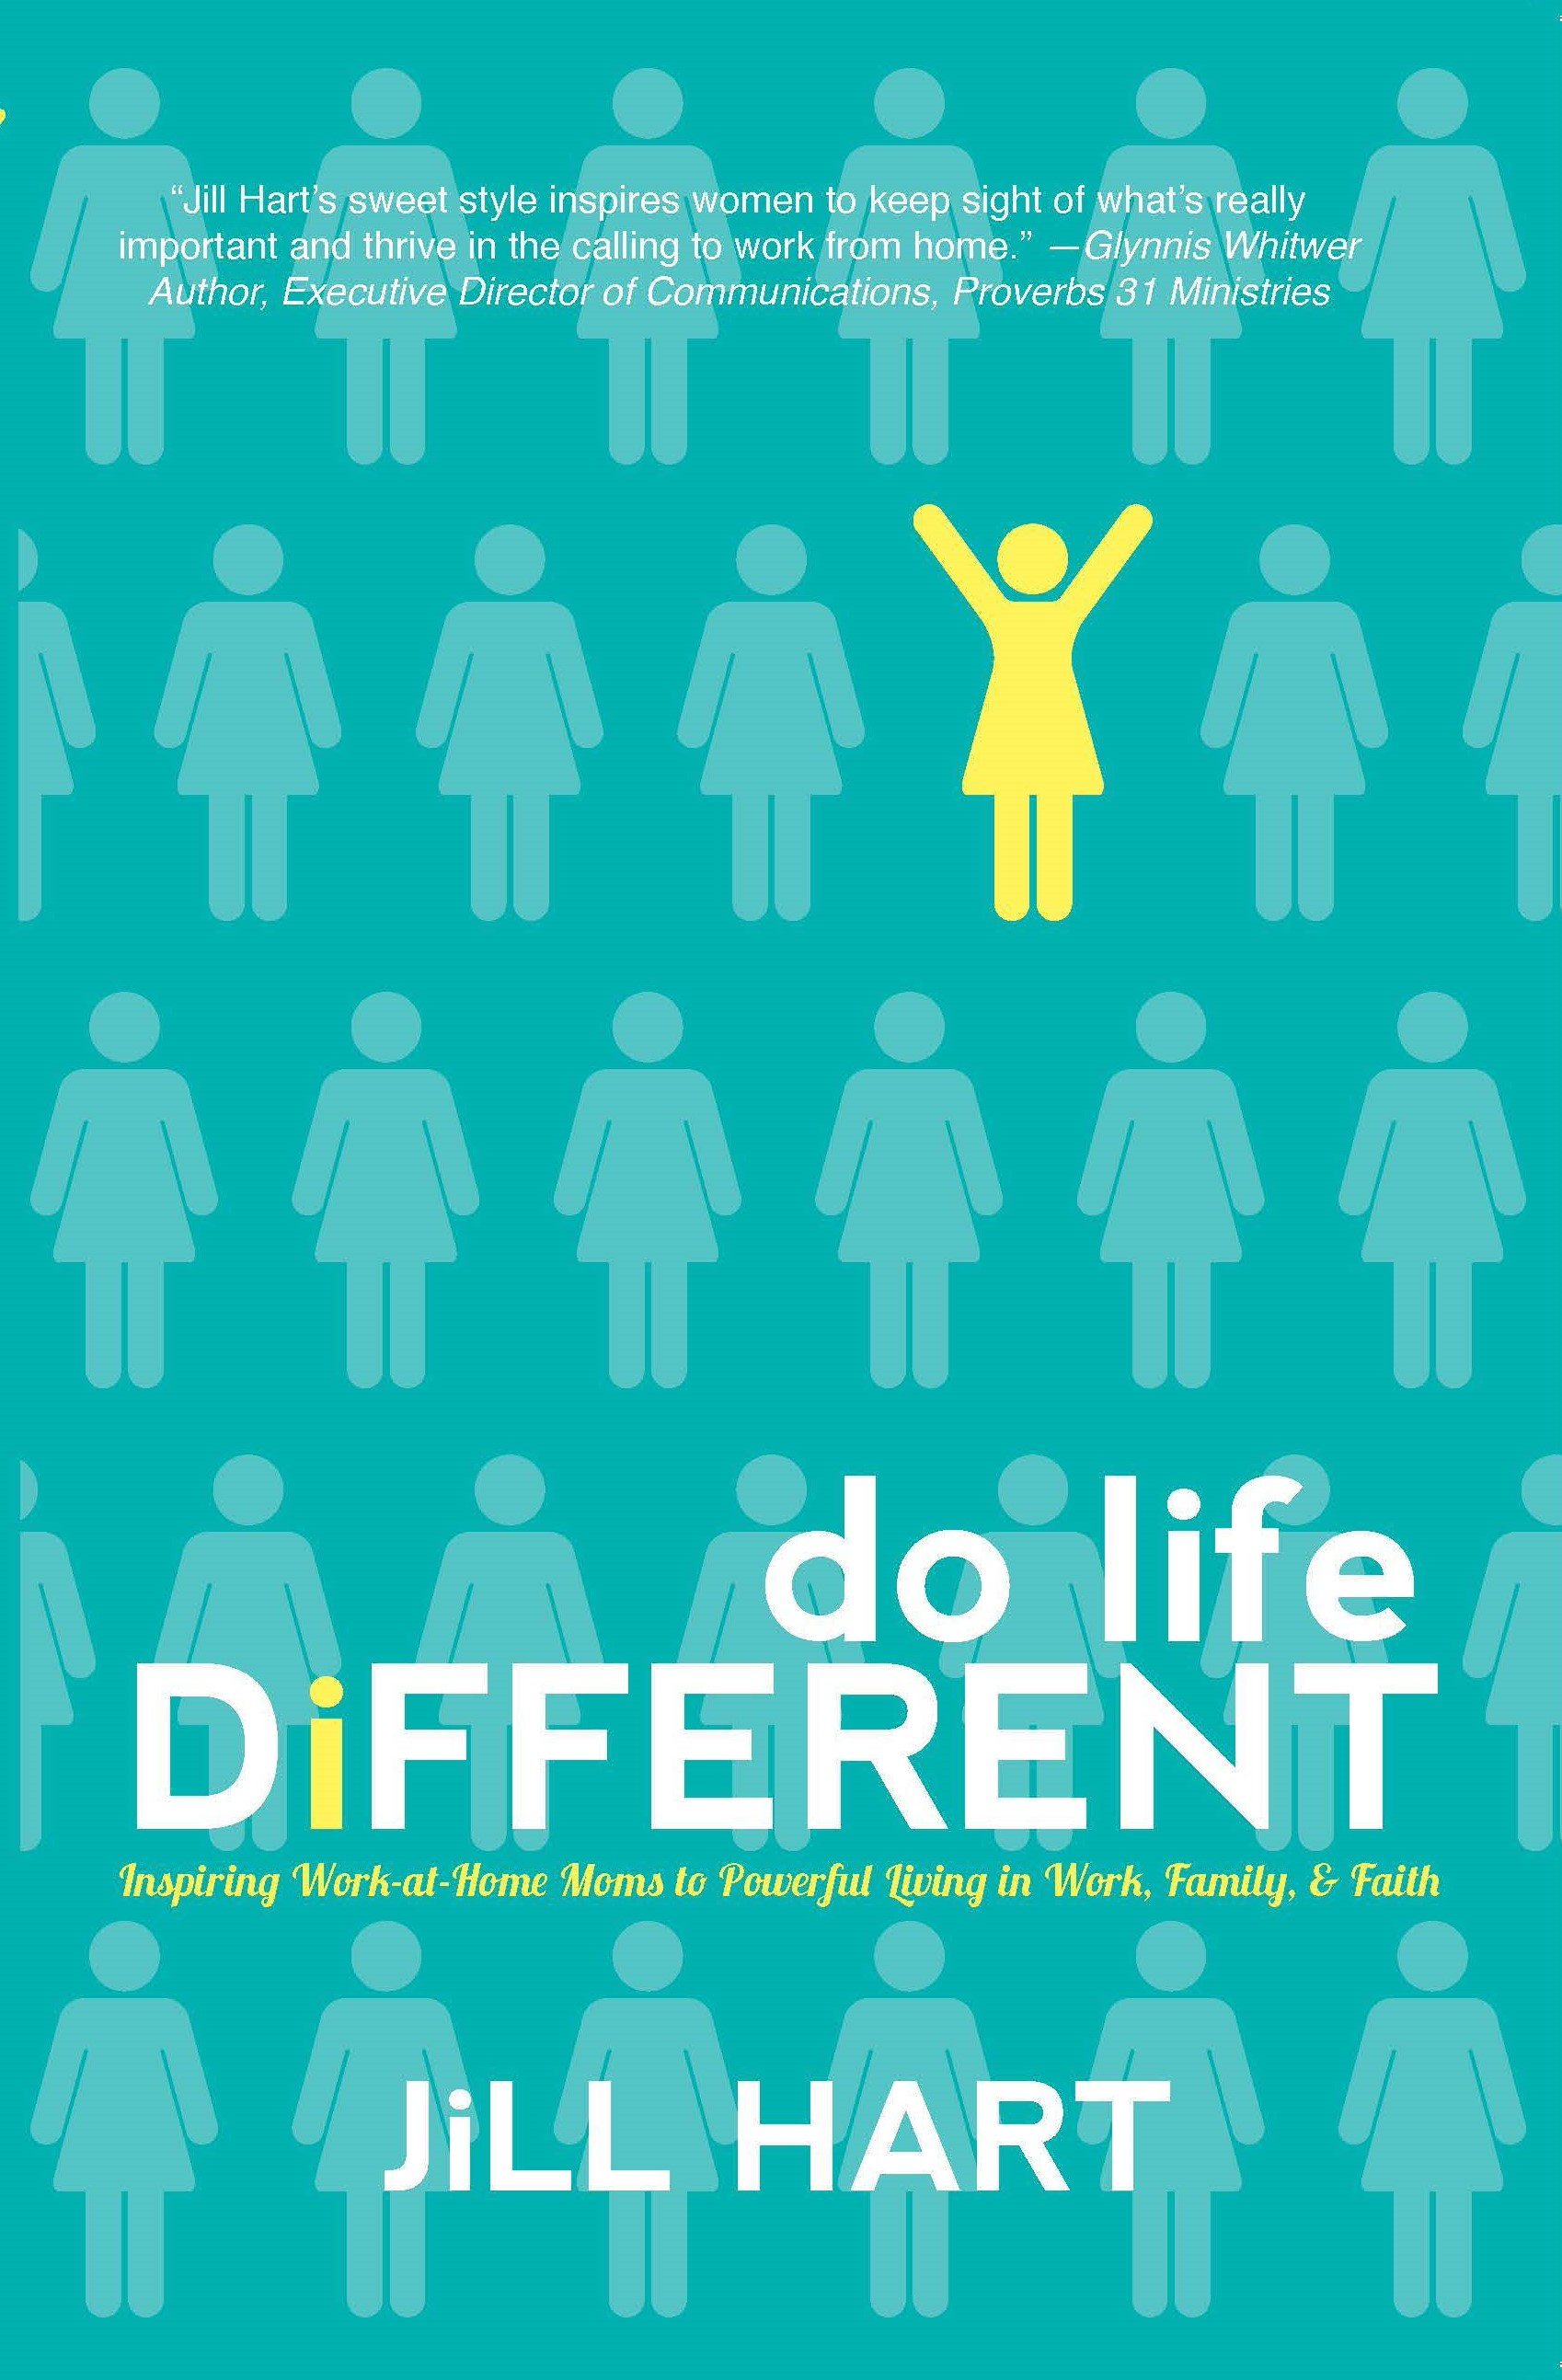 DoLifeDifferent_newlogoFINALfront.jpg